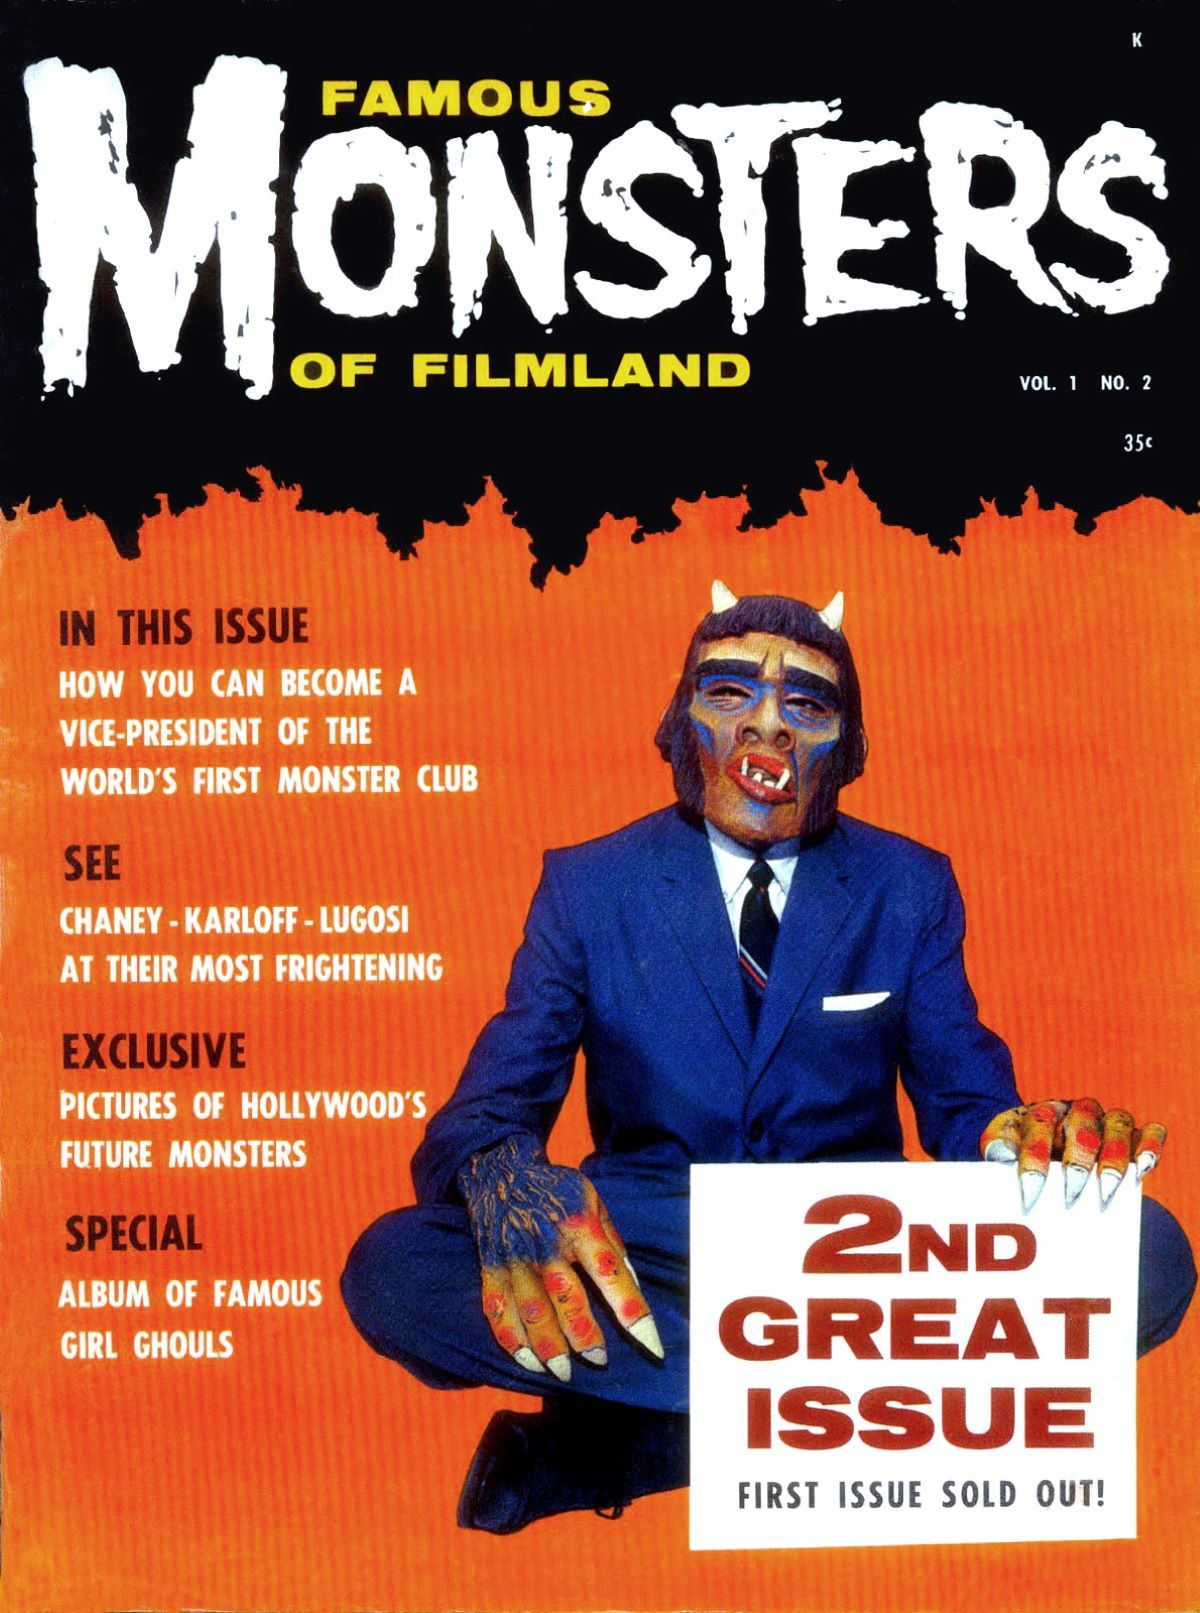 Famous Monsters of Filmland, magazine, horror films, second issue